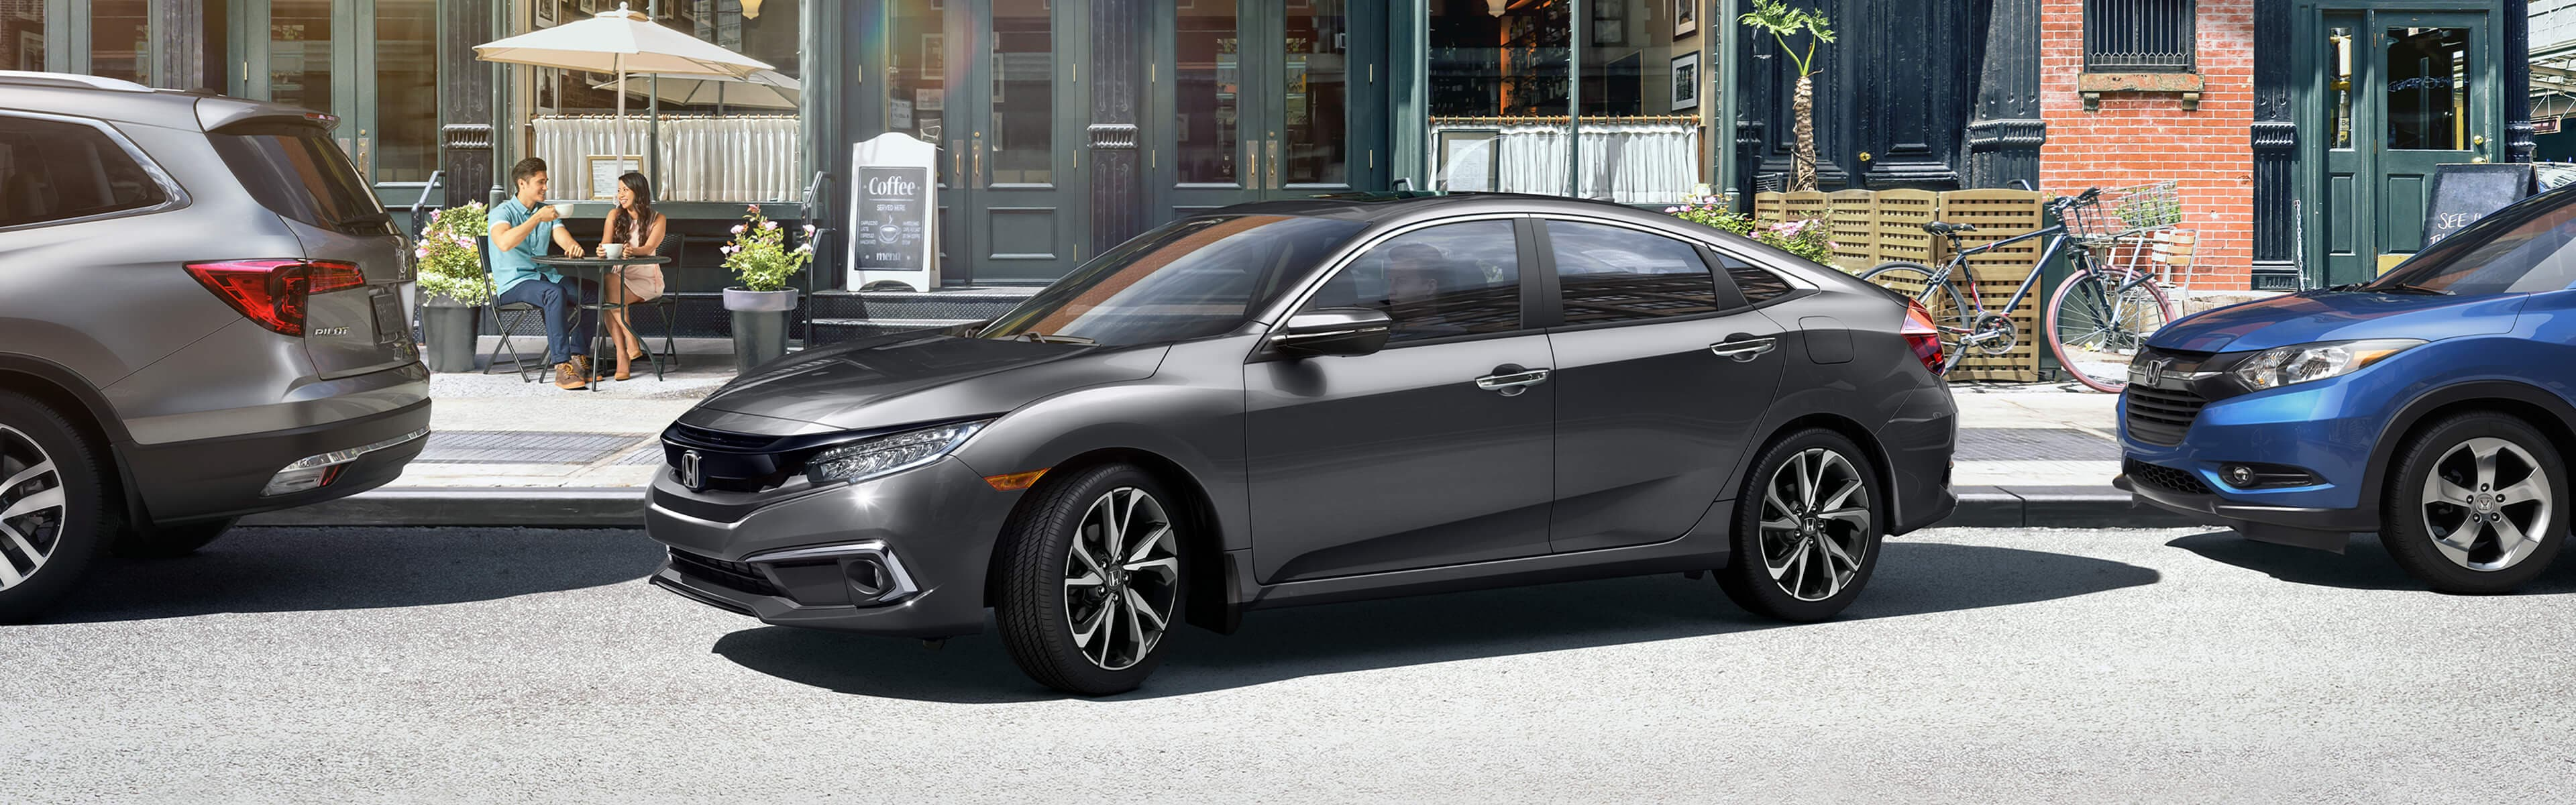 2019 Honda Civic | Maple Honda